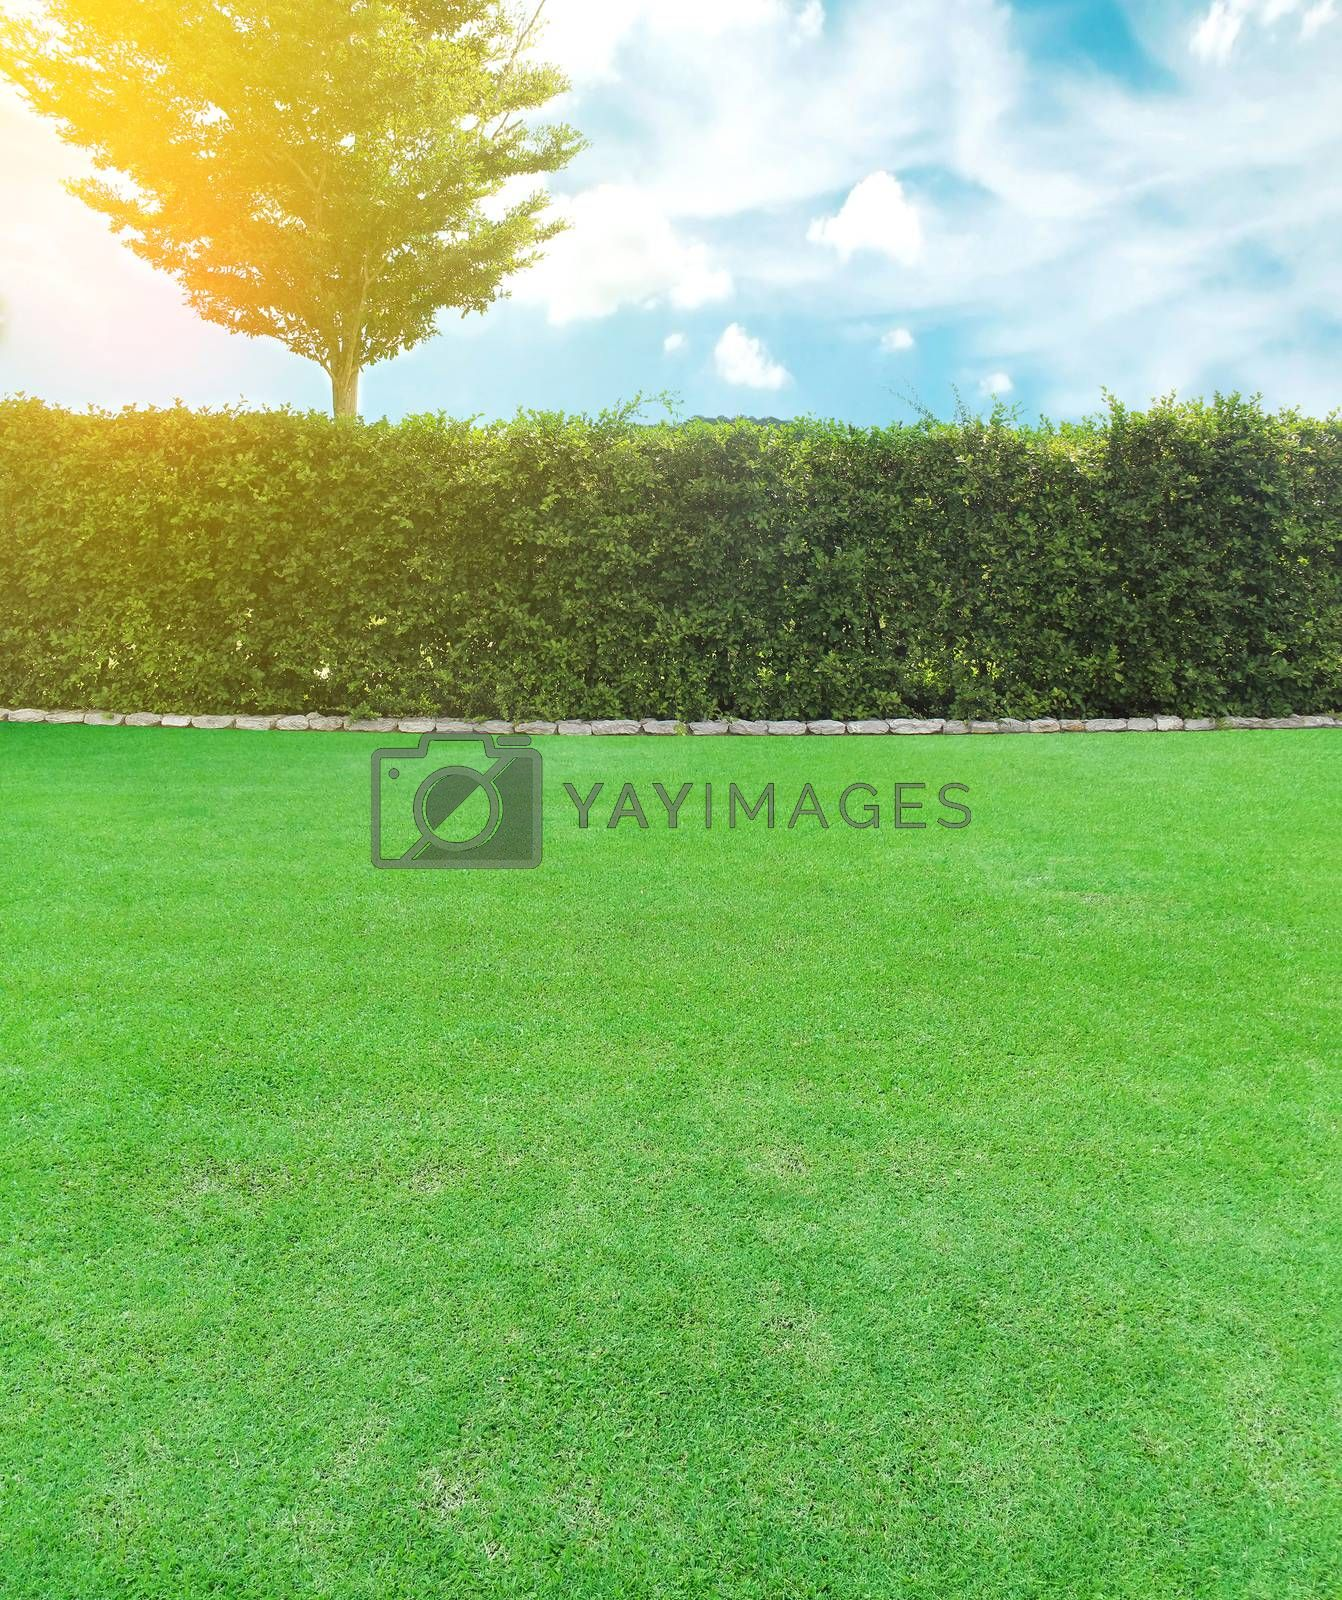 Grown tree with brick wall and lawn field with burst light